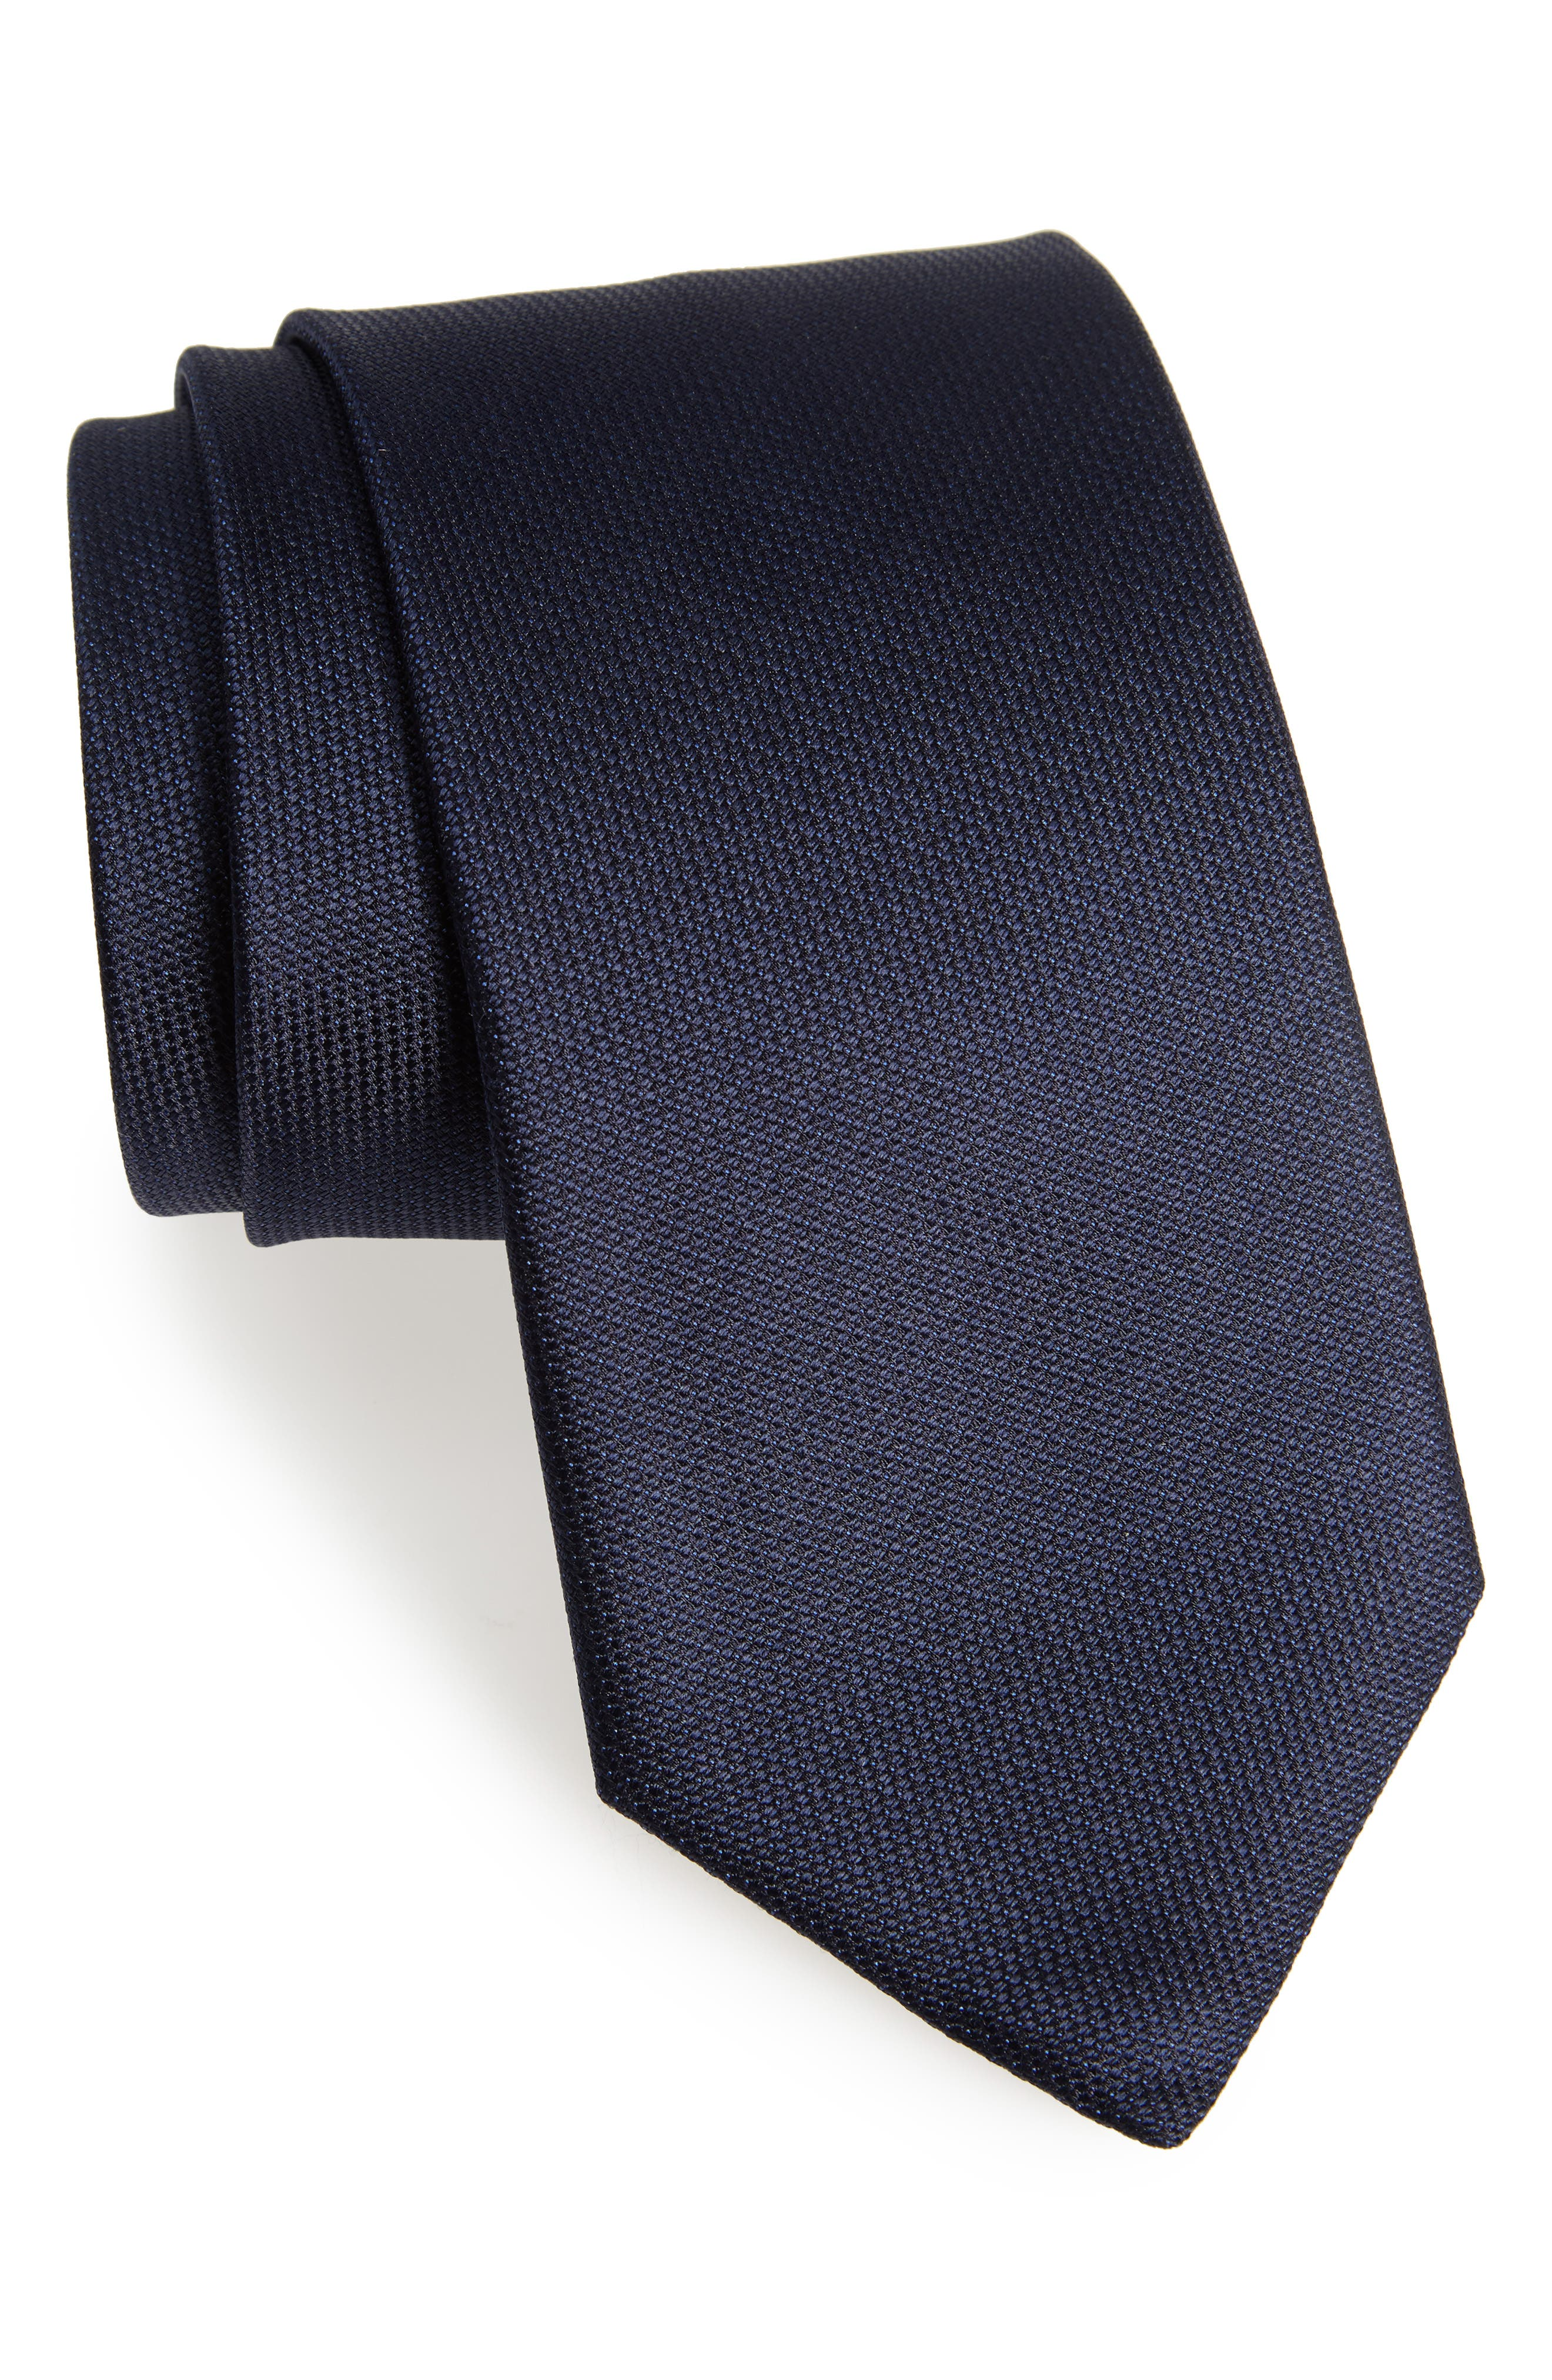 Solid Silk Tie,                             Main thumbnail 1, color,                             Charcoal